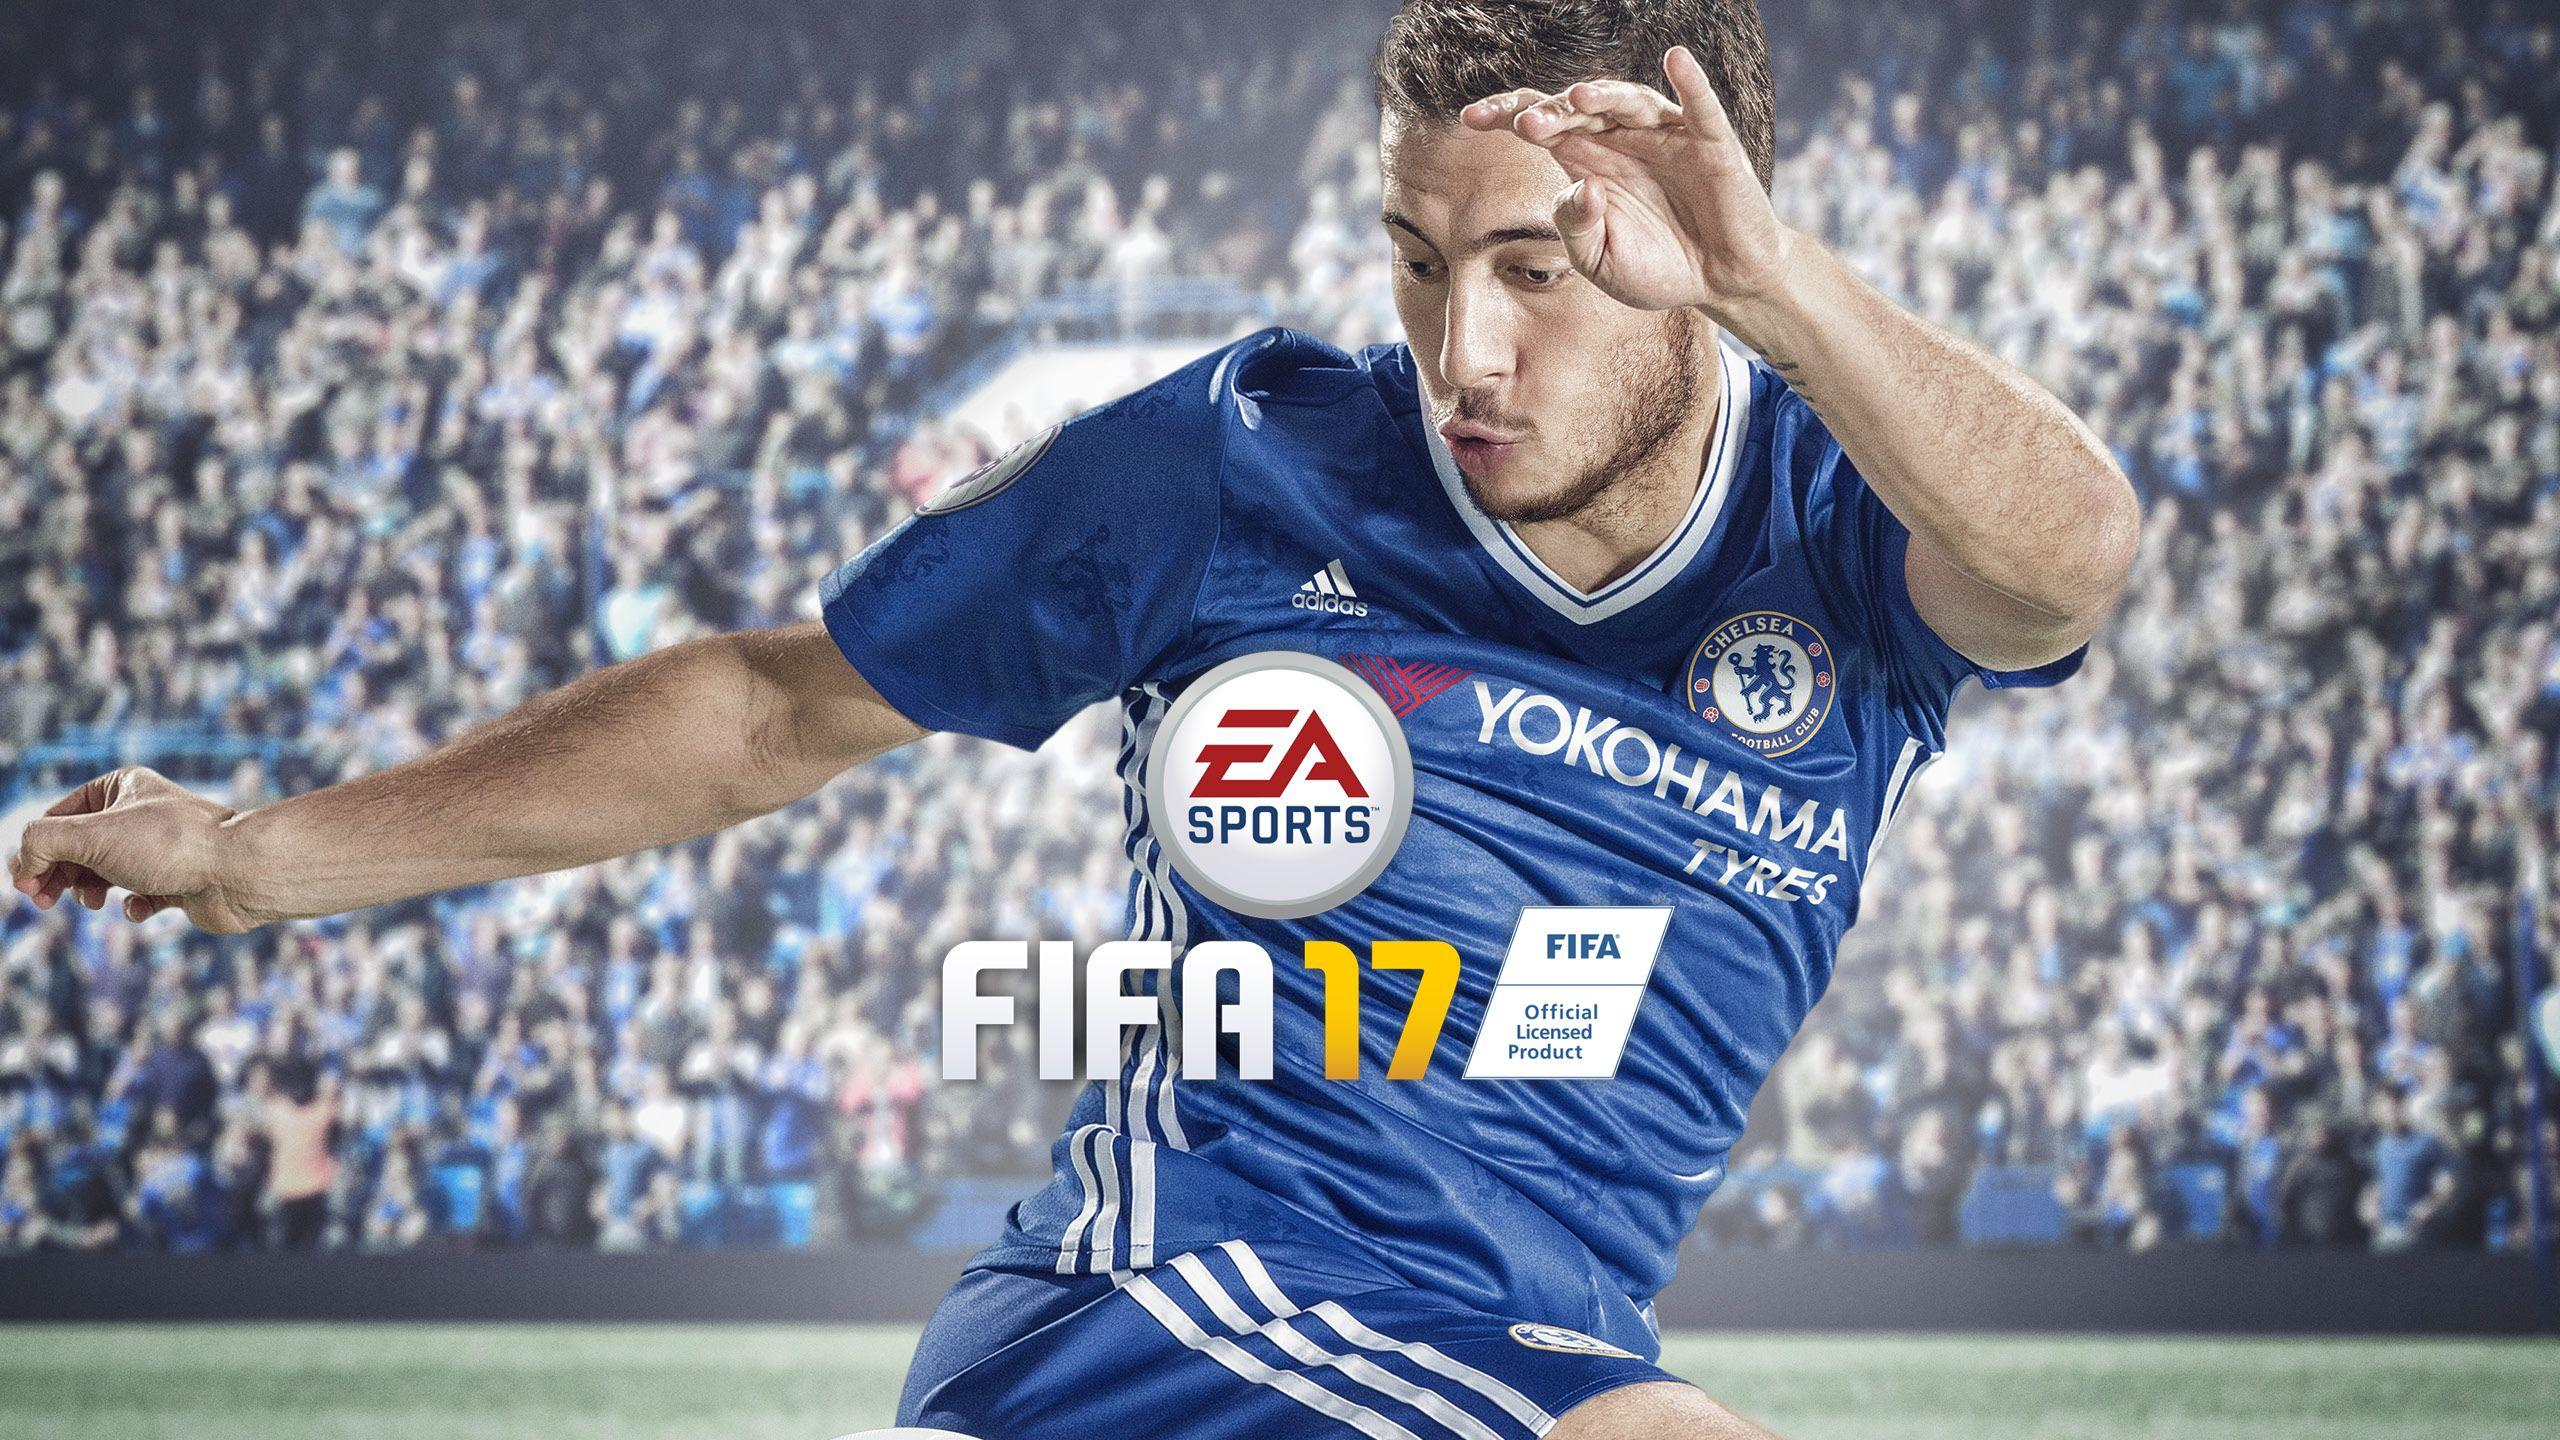 Wallpaper FIFA 17, PC, PS3, PS4, Xbox, Games, #1053